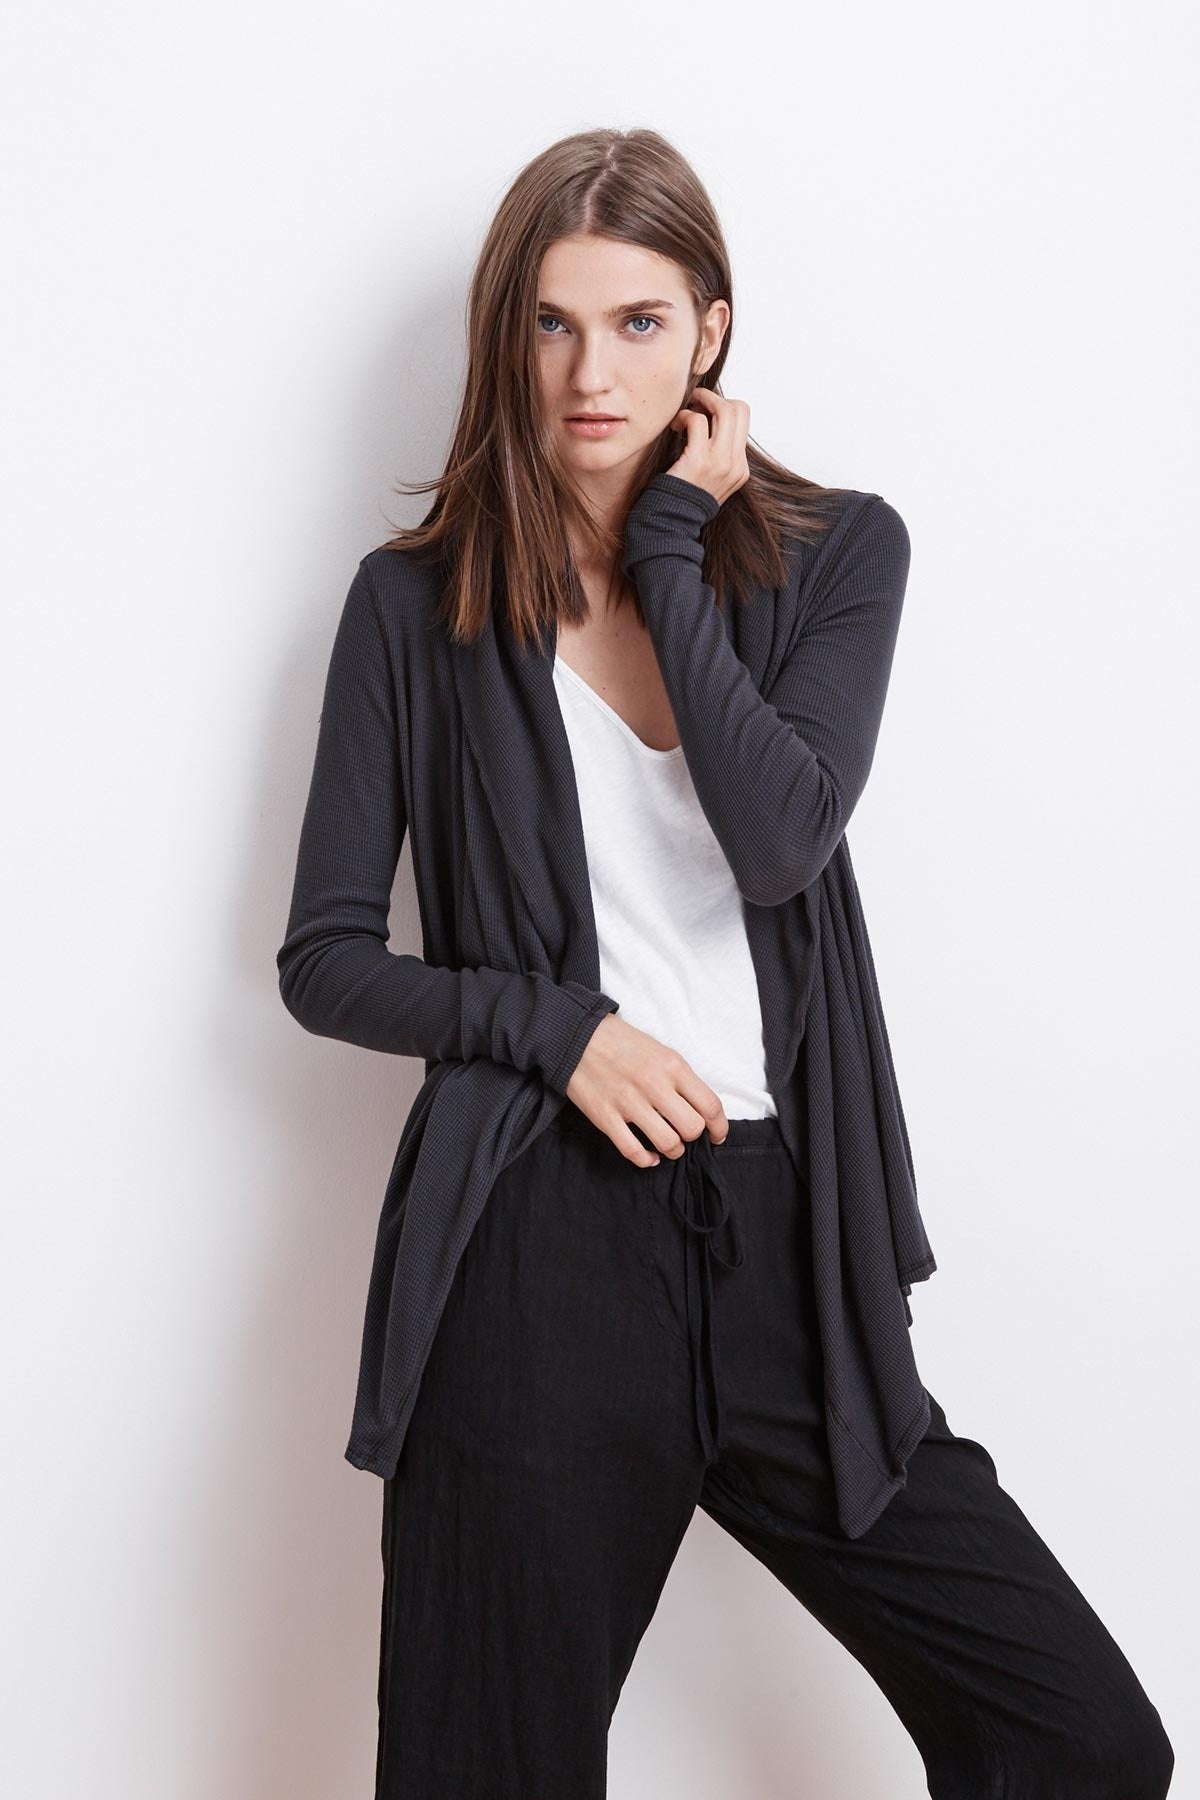 a ideas drape how to outfit blanketcardigan winter front drapes black cardigan wear